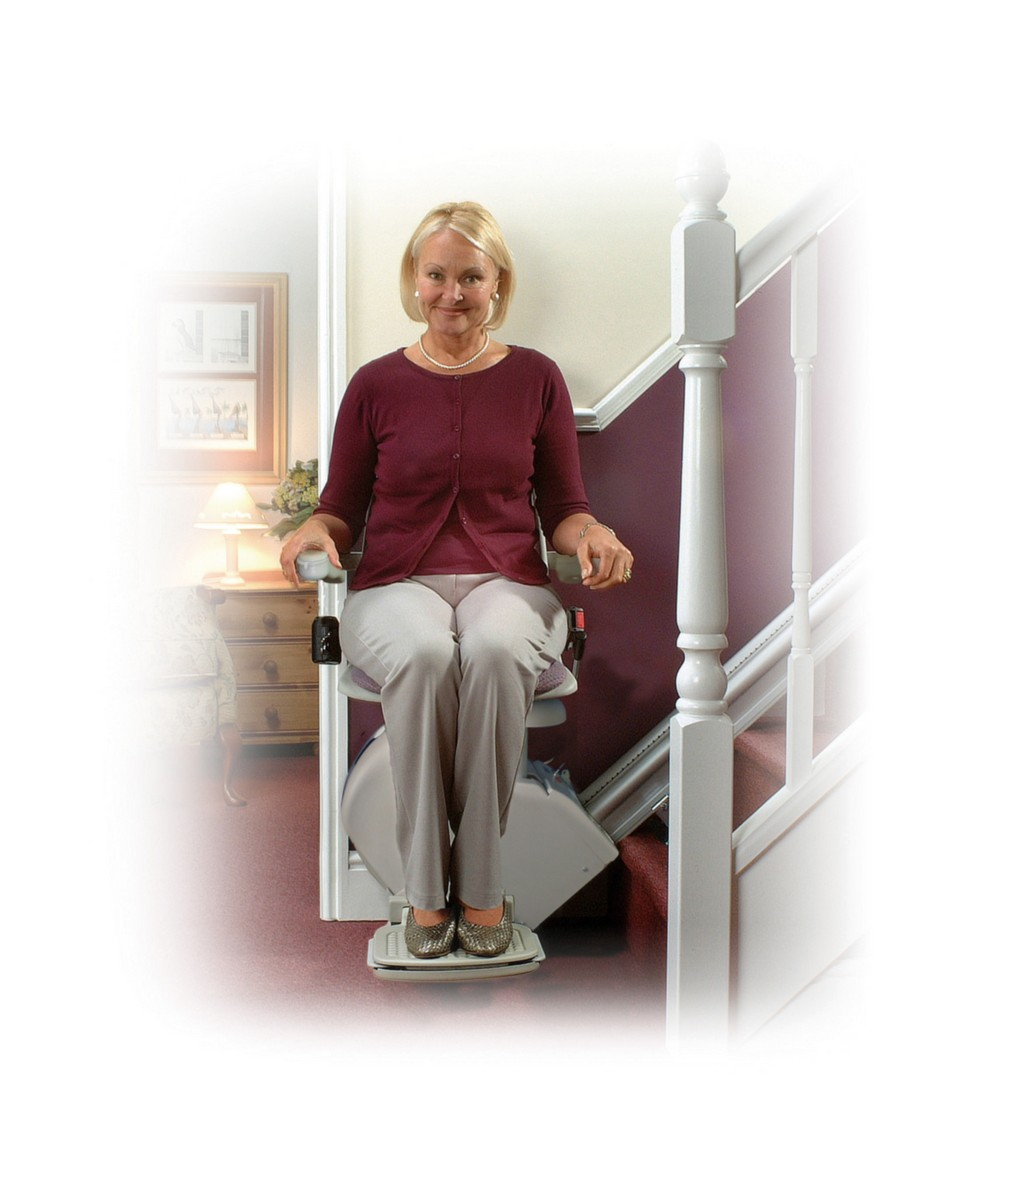 silver glide stair lift, akorn stair lifts, wheelchair stair lift, concord stairlift instructions